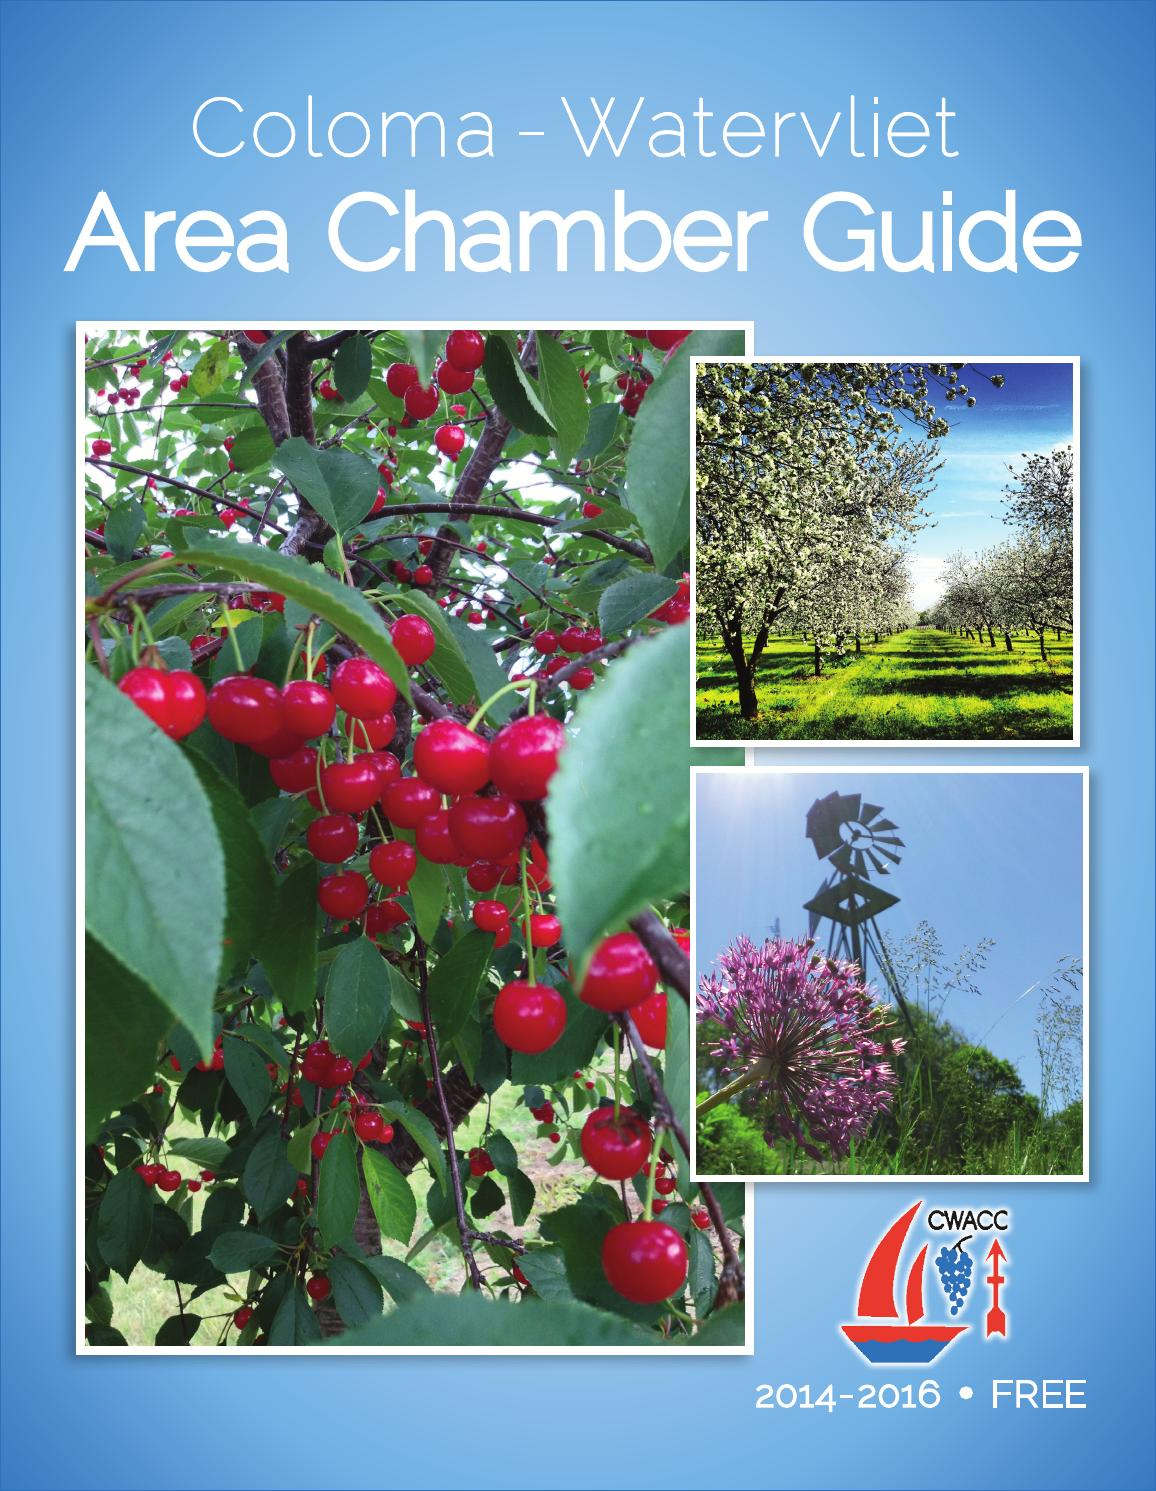 Coloma watervliet area chamber guide by leader publications issuu izmirmasajfo